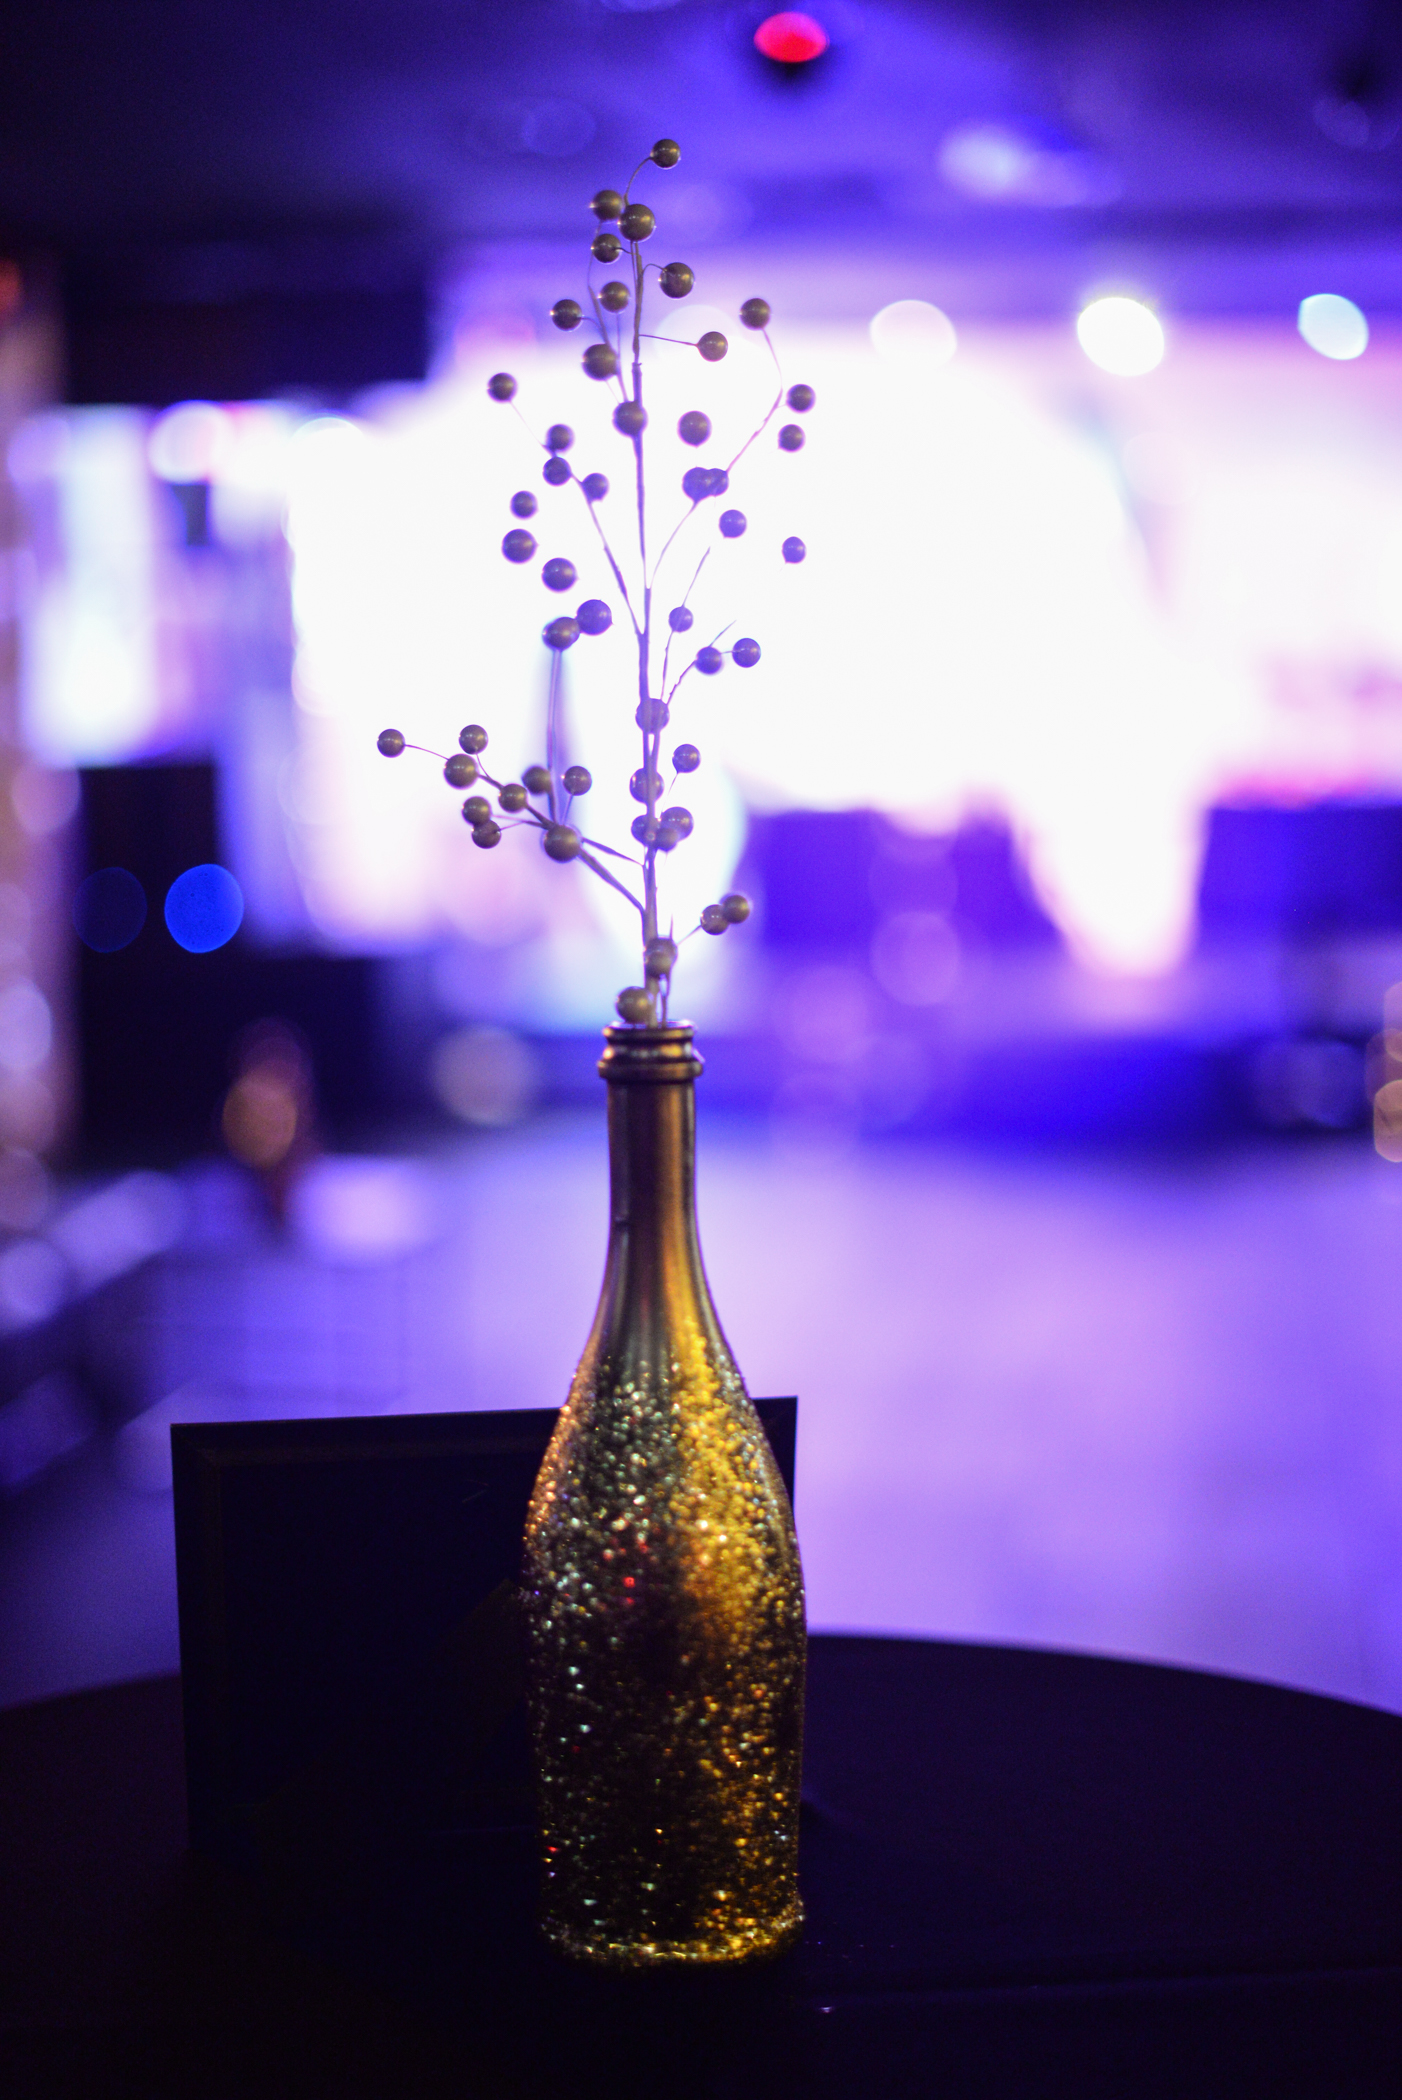 Champagne Party Details Small-3.JPG